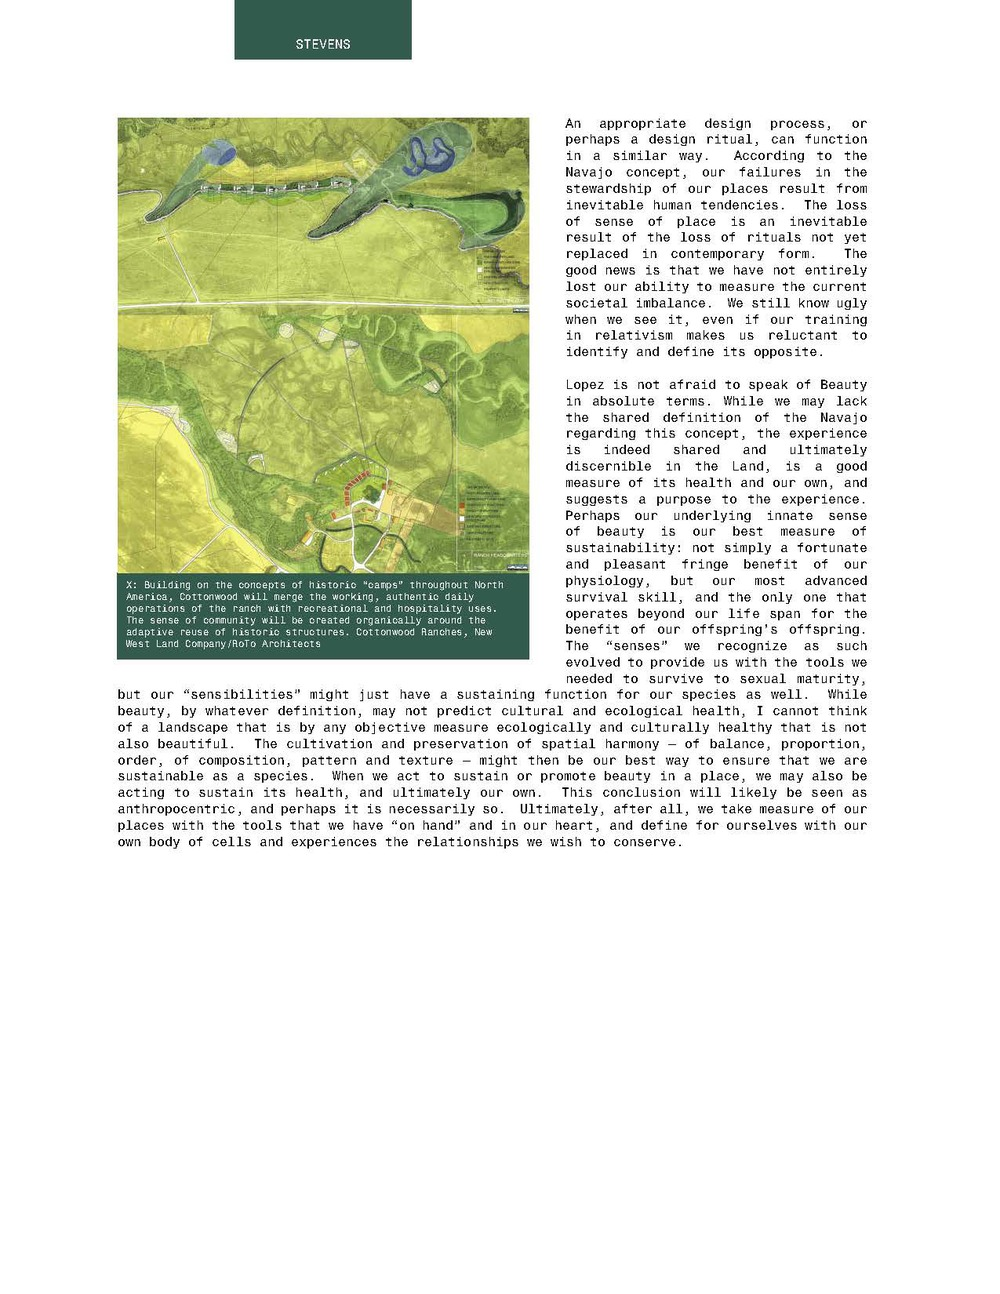 UT New West Land Co Article_Page_25.jpg